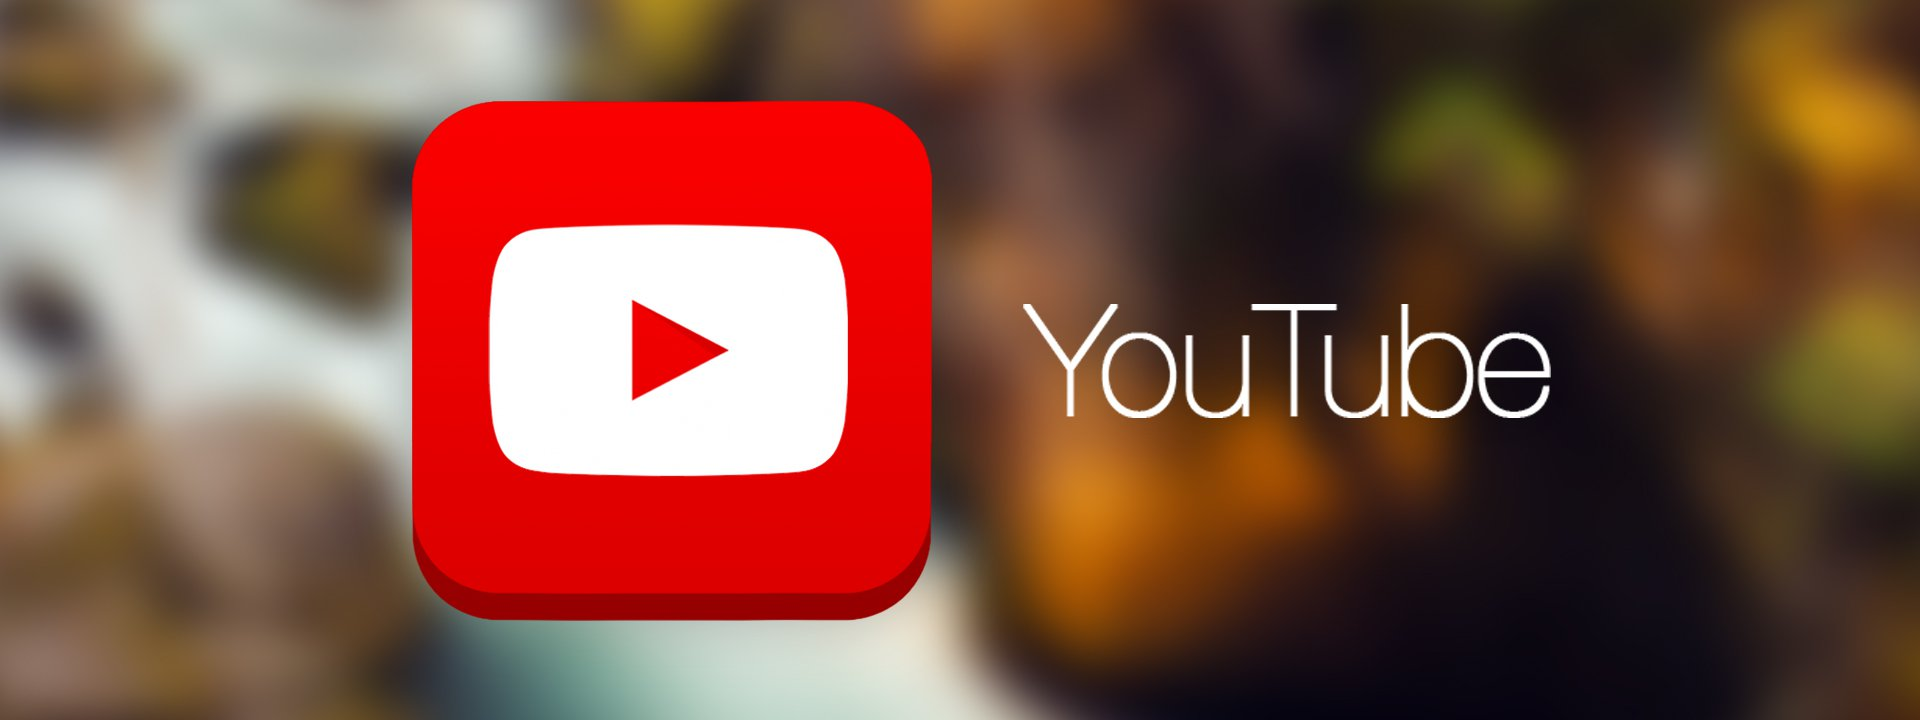 Tuto Comment Telecharger Une Video Youtube Pour La Regarder Hors